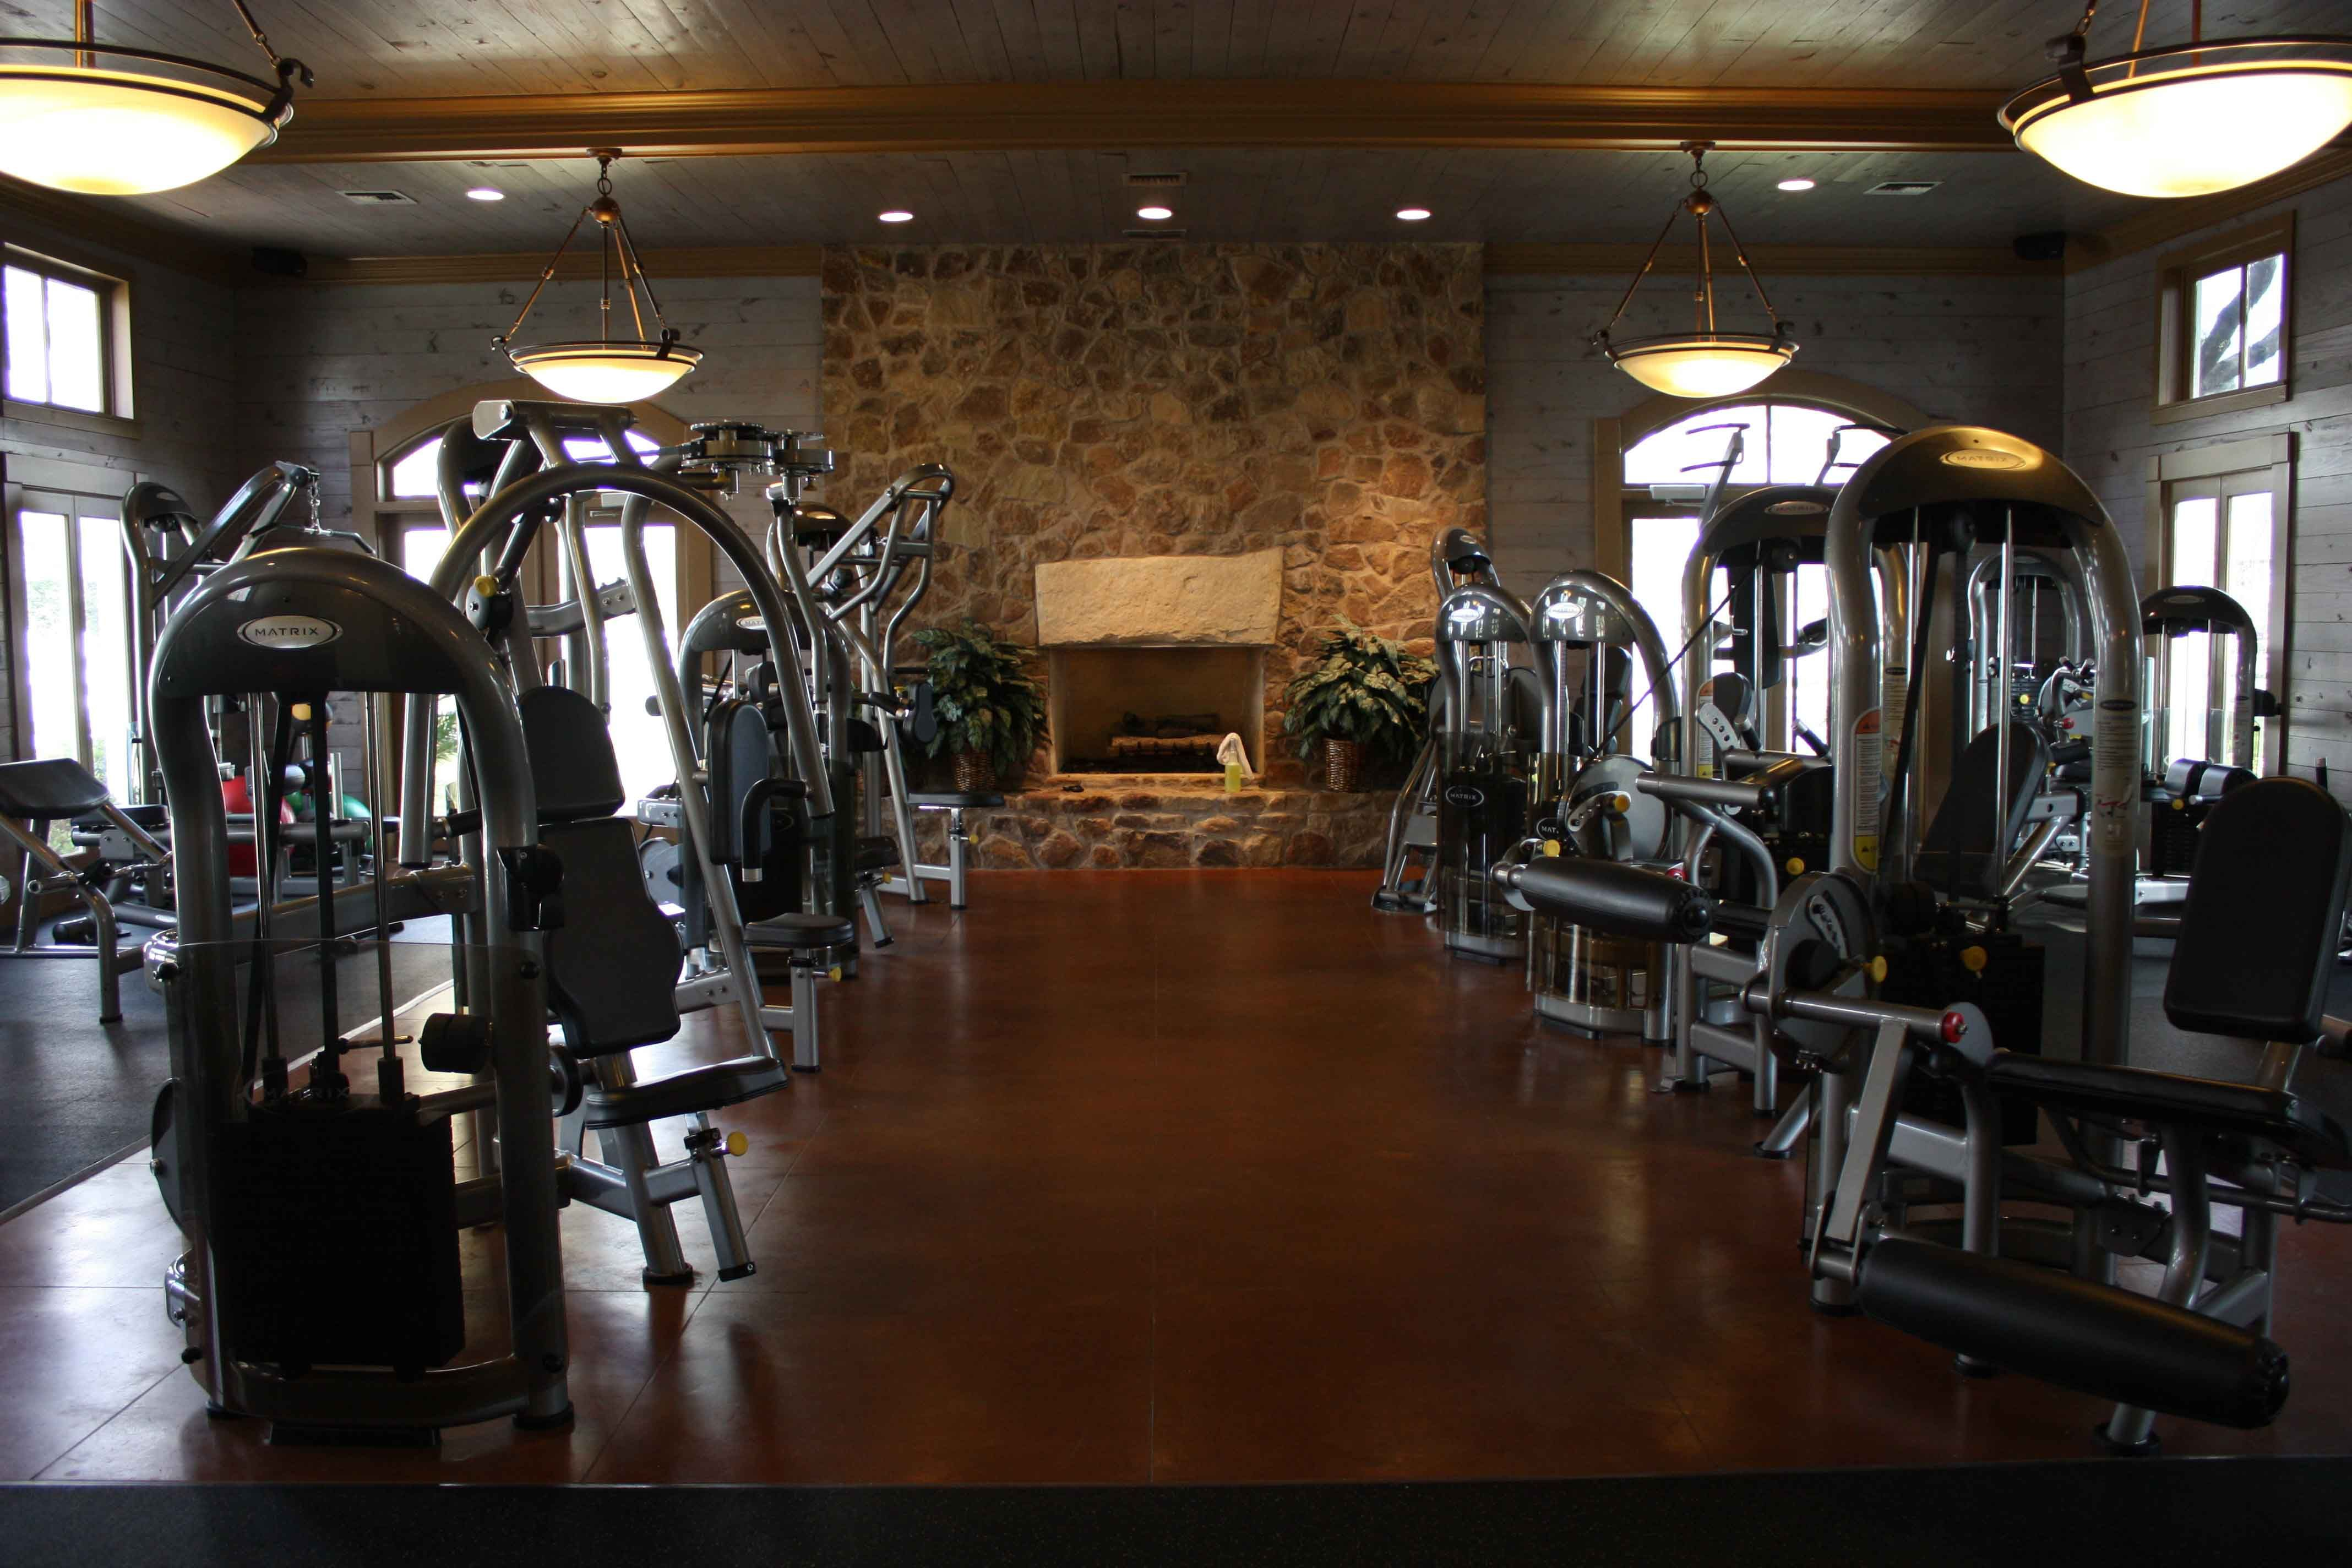 Images about gym s design on pinterest home gyms a gym and search - Fitness Center Interior Design Google Search